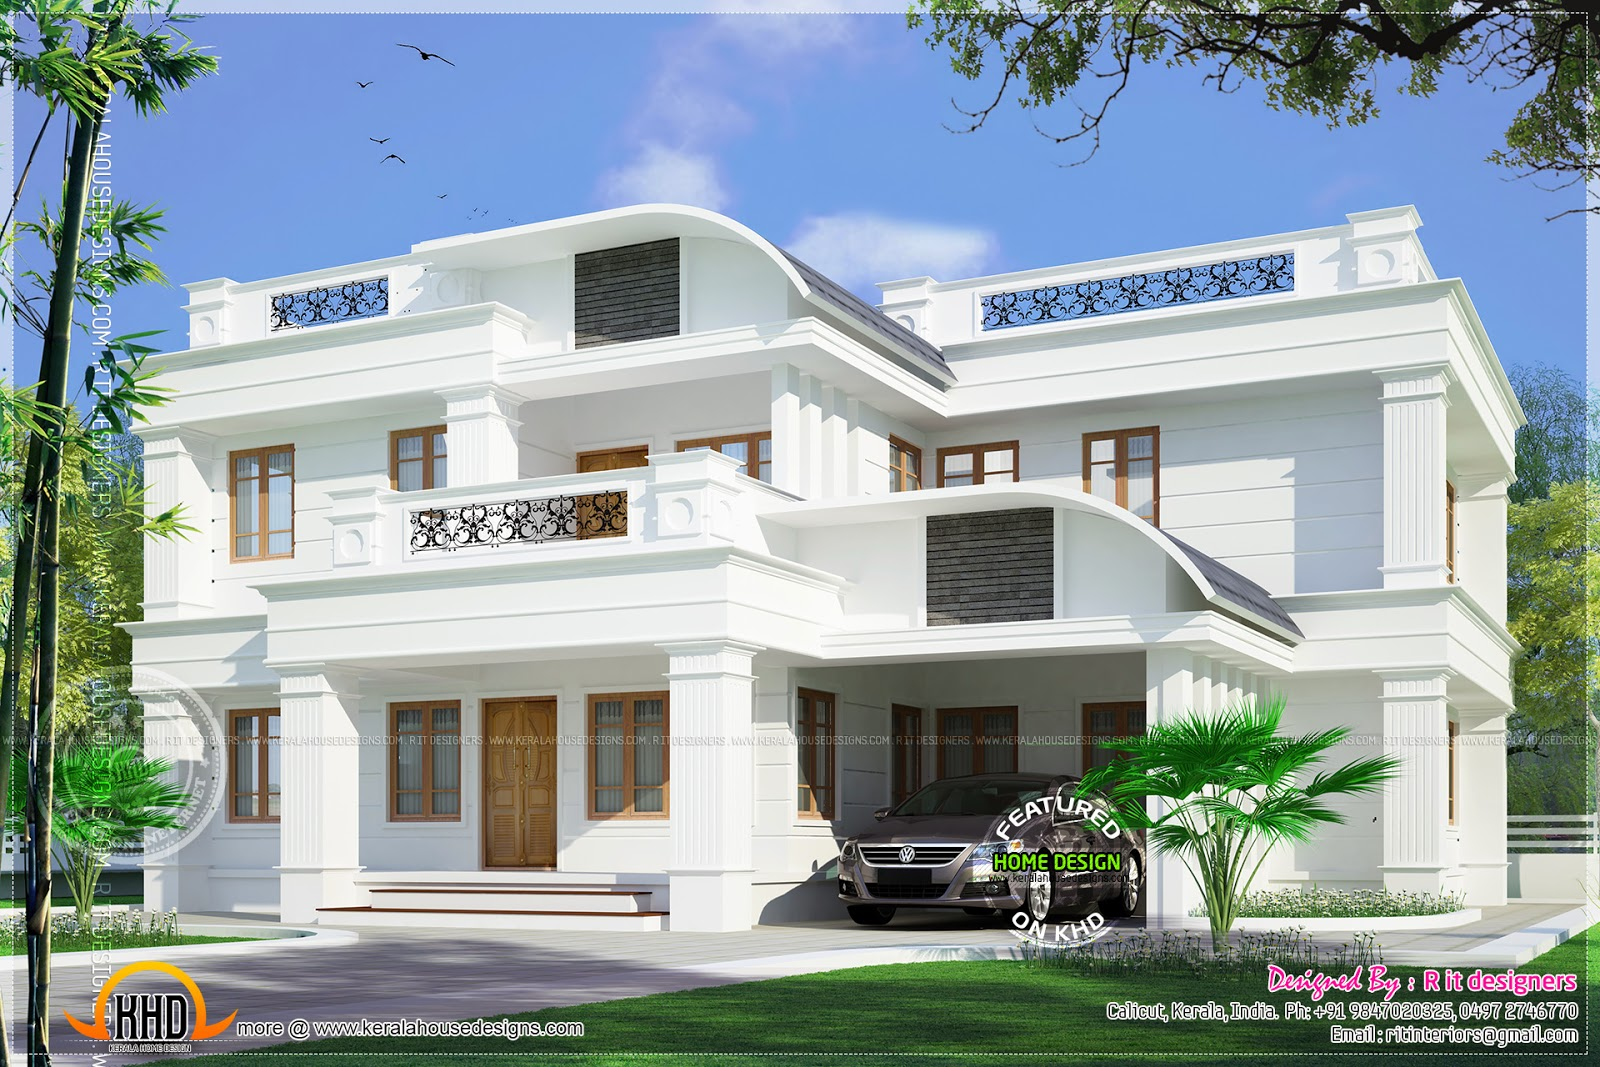 Belize normal home plans for Normal home front design